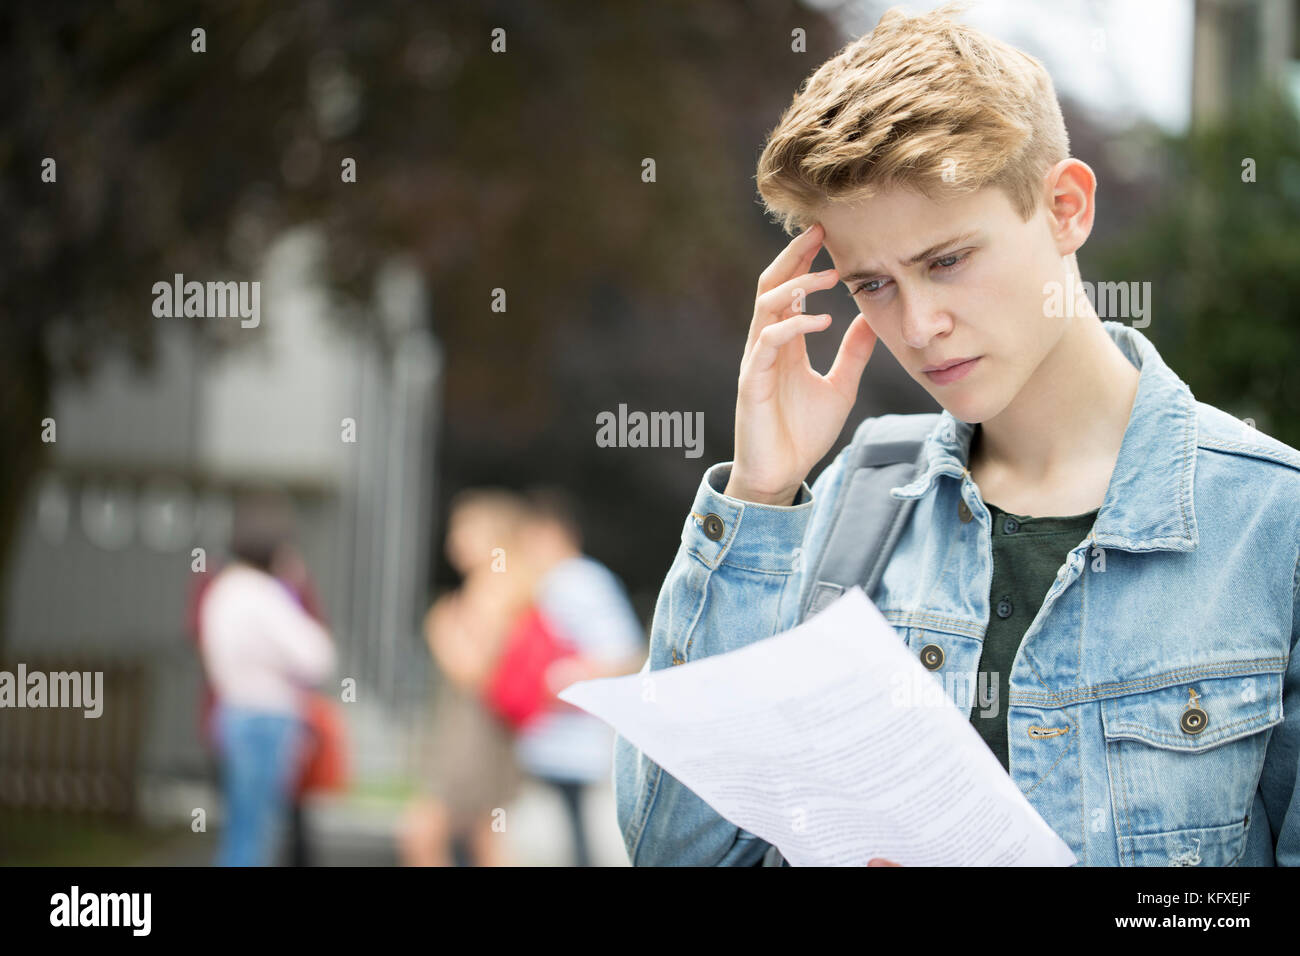 Teenage Boy Disappointed With Exam Results - Stock Image